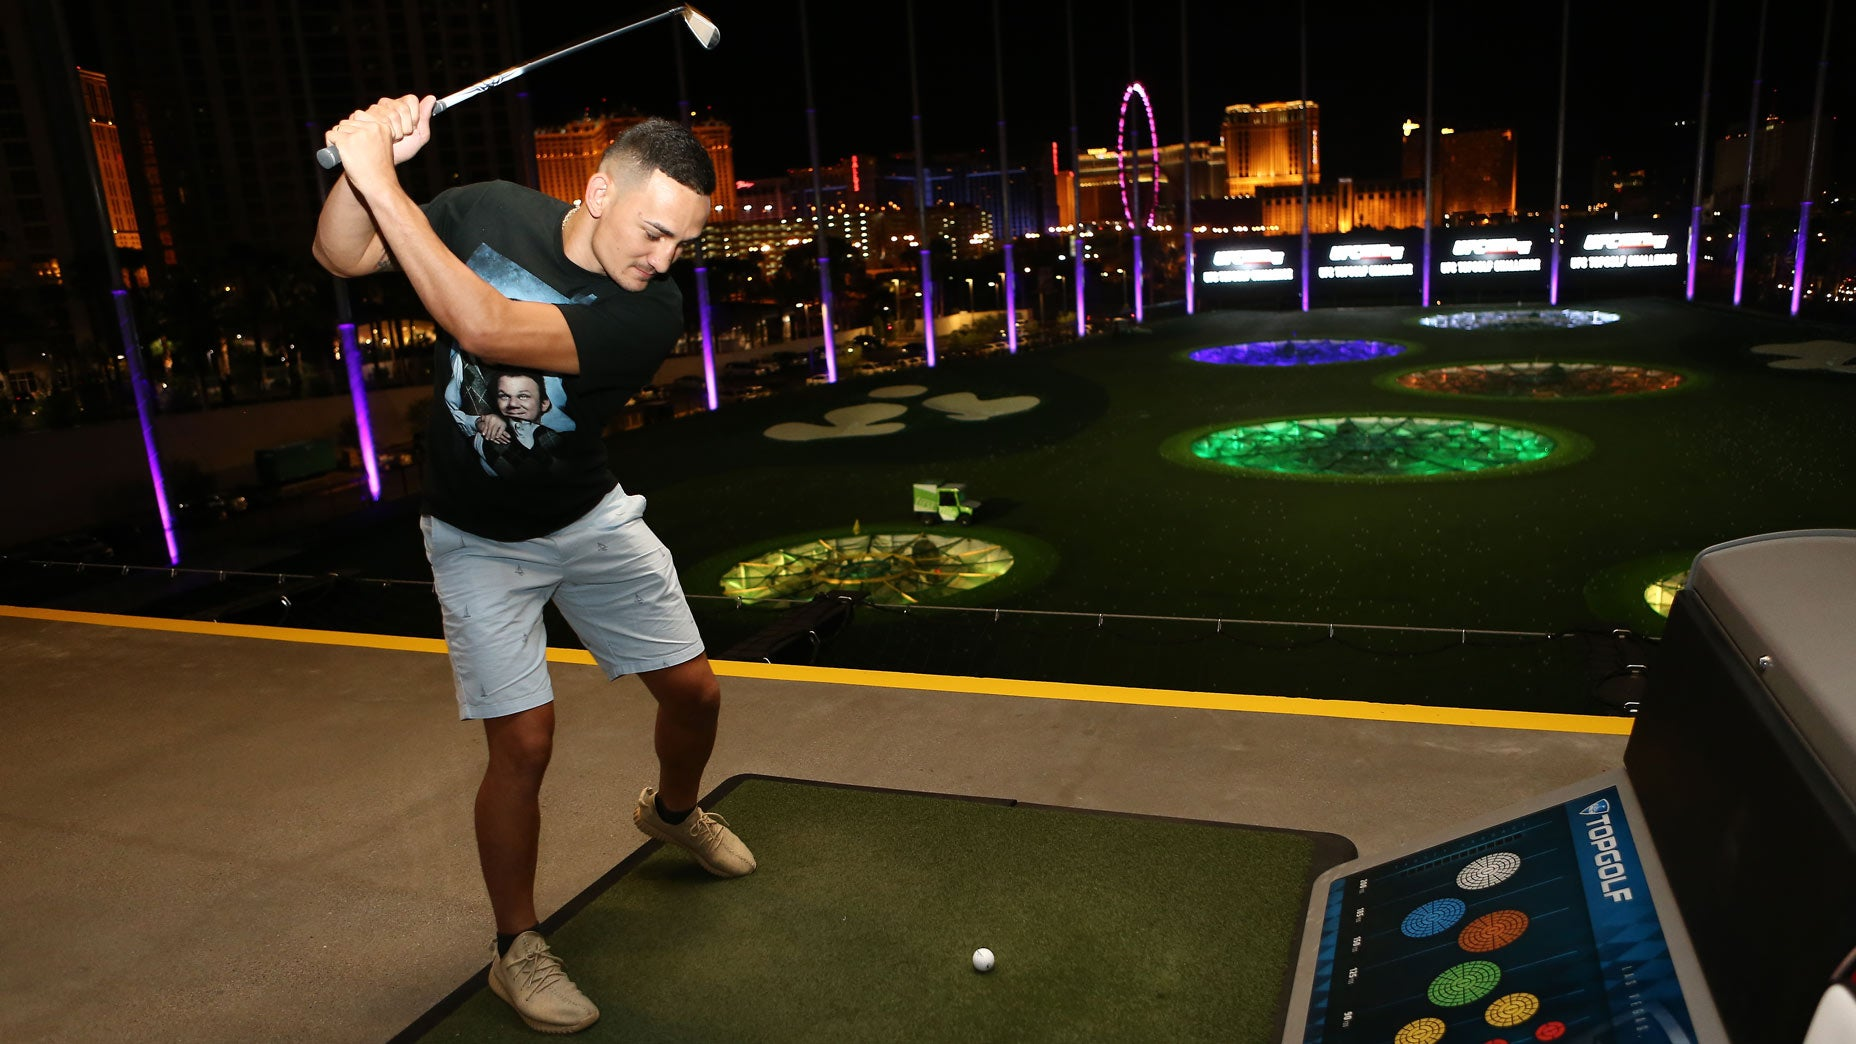 Why did Callaway buy TopGolf? Their CEOs explain the strategy